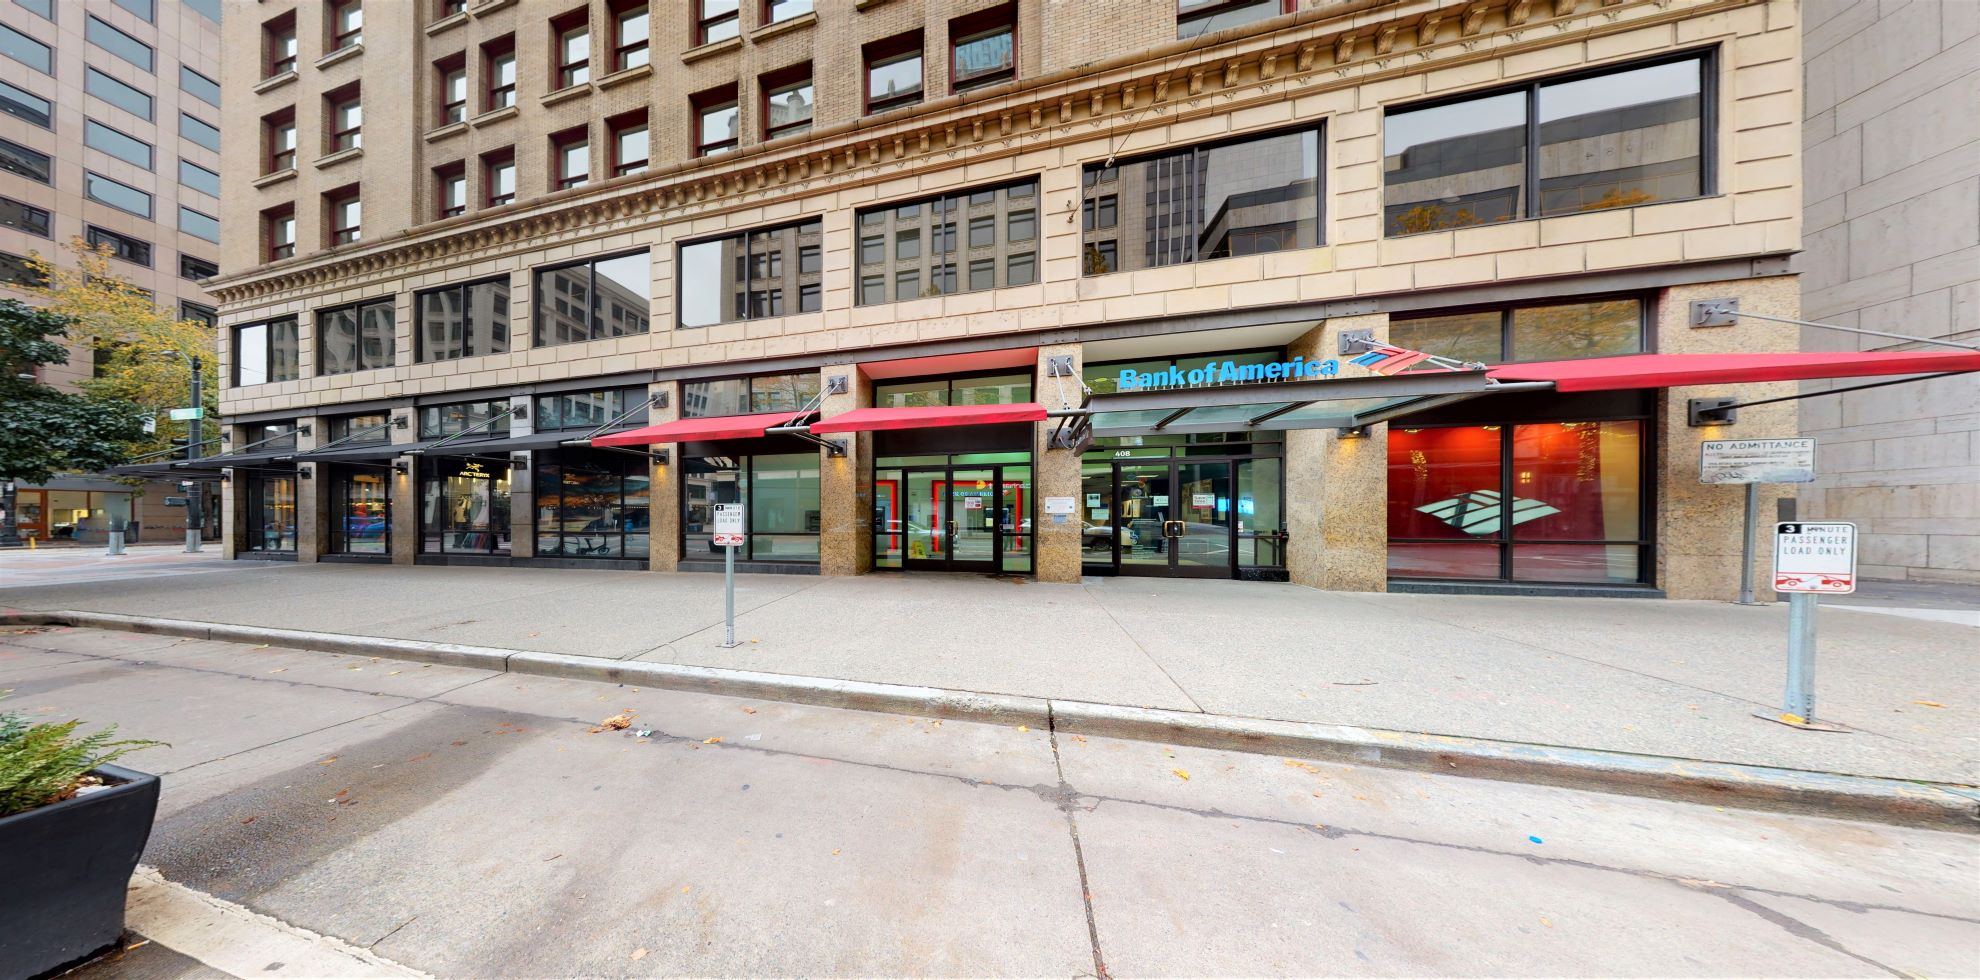 Bank of America financial center with walk-up ATM | 408 Pike St, Seattle, WA 98101